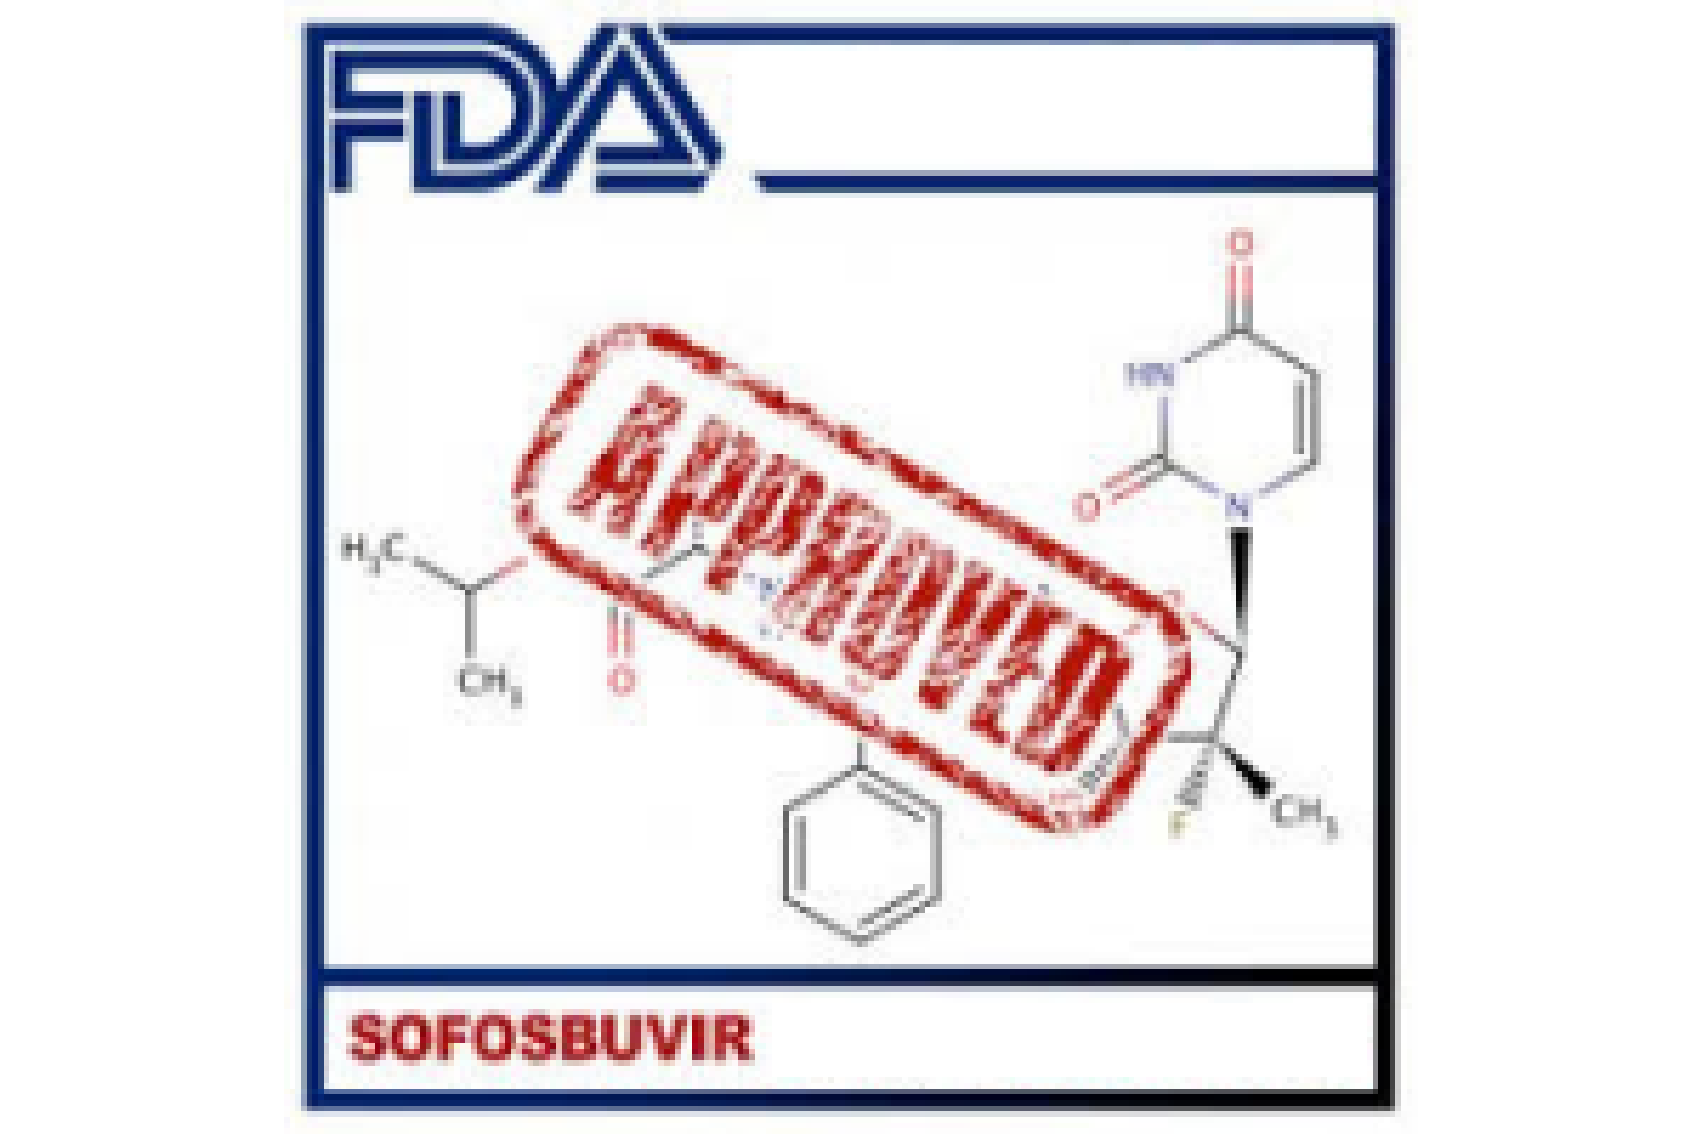 Sofosbuvir in Thailand: Price and Patent Justified?